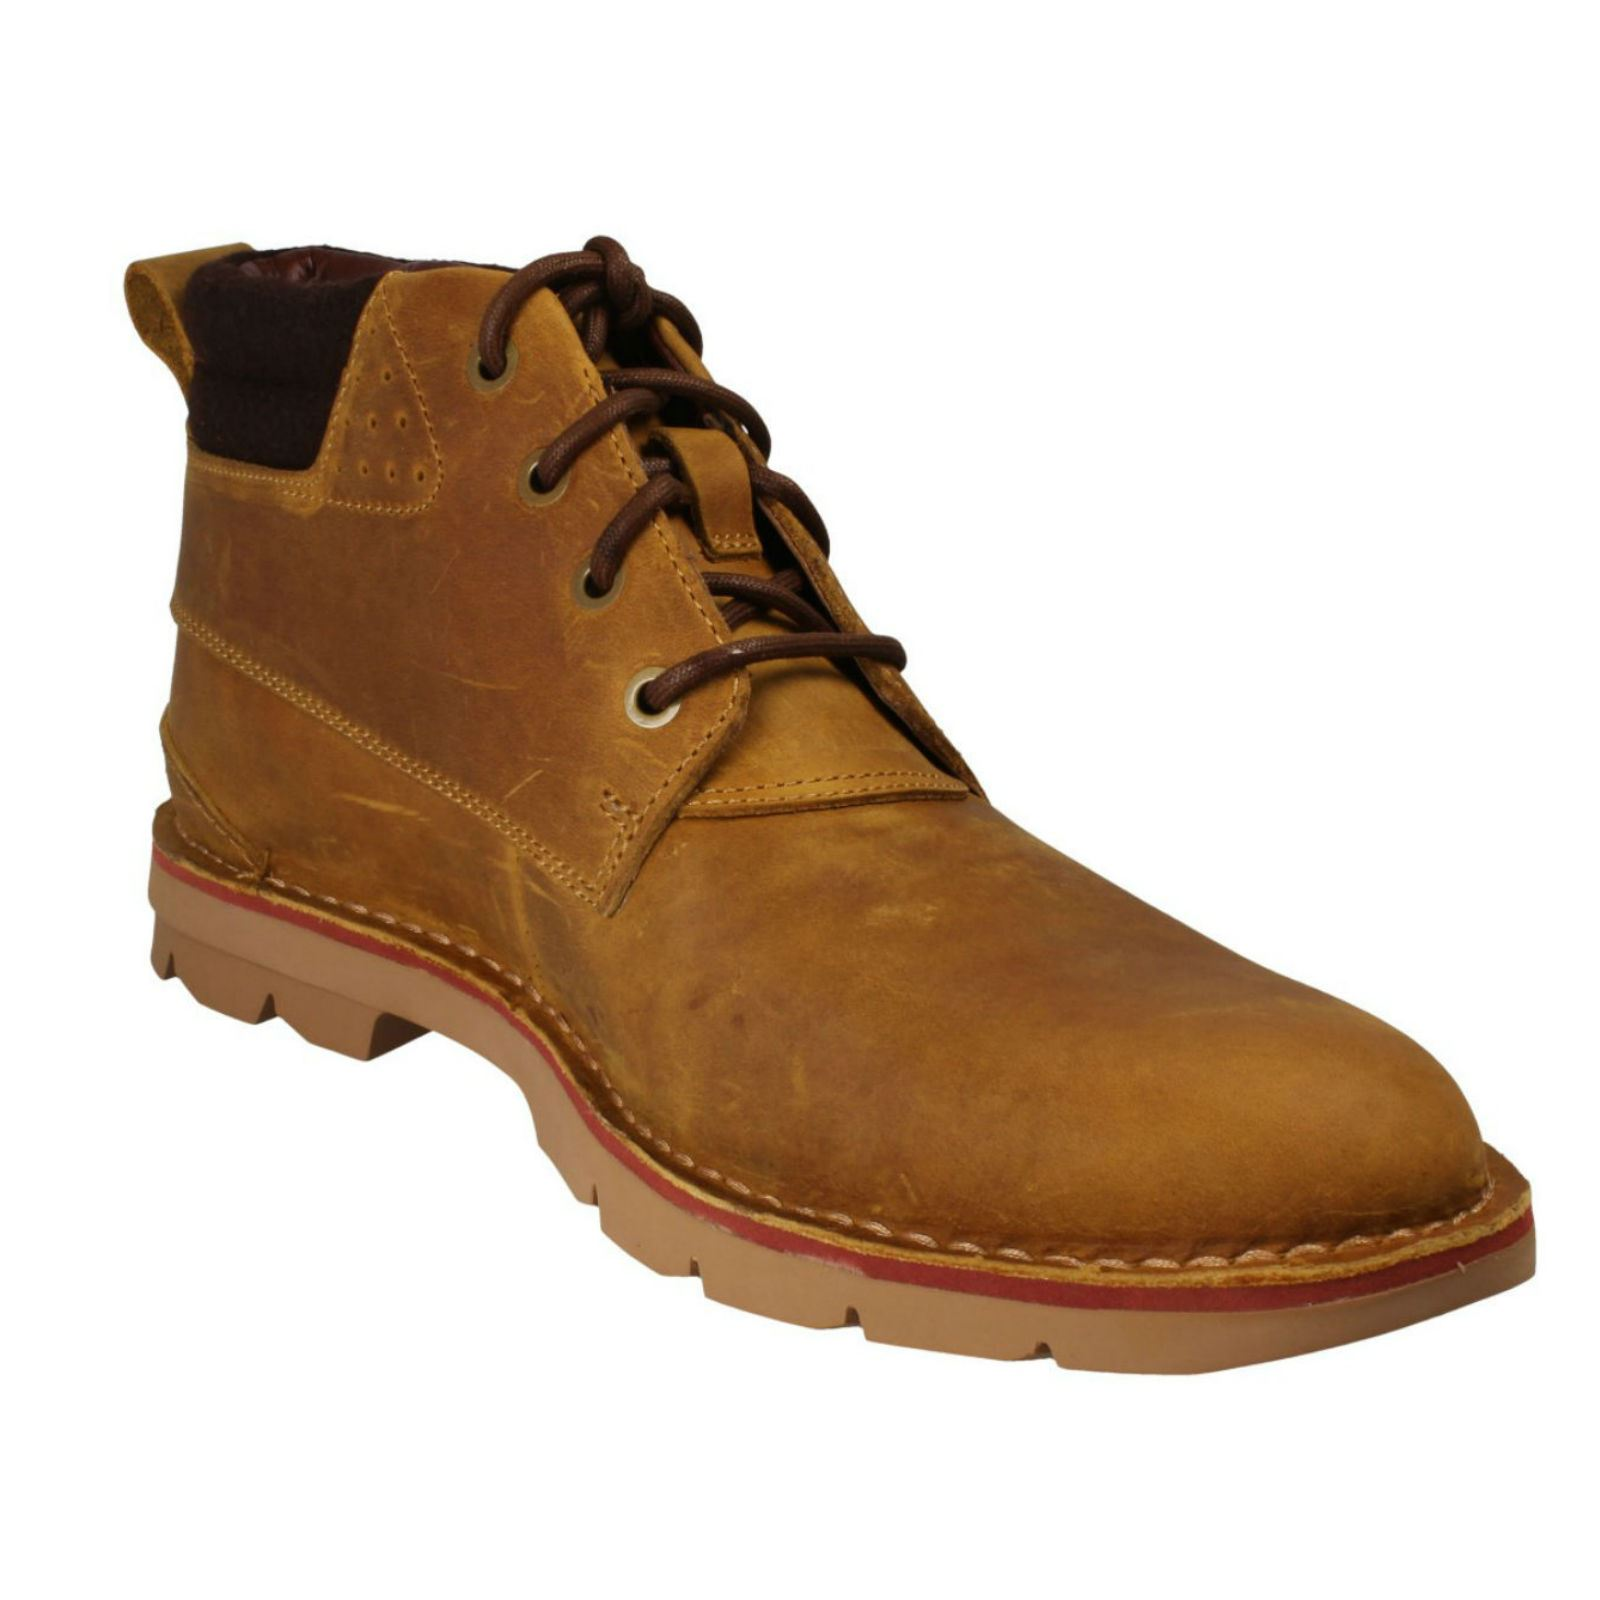 Mens-Clarks-Warm-Lined-Casual-Boots-039-Varick-Heal-039 thumbnail 16